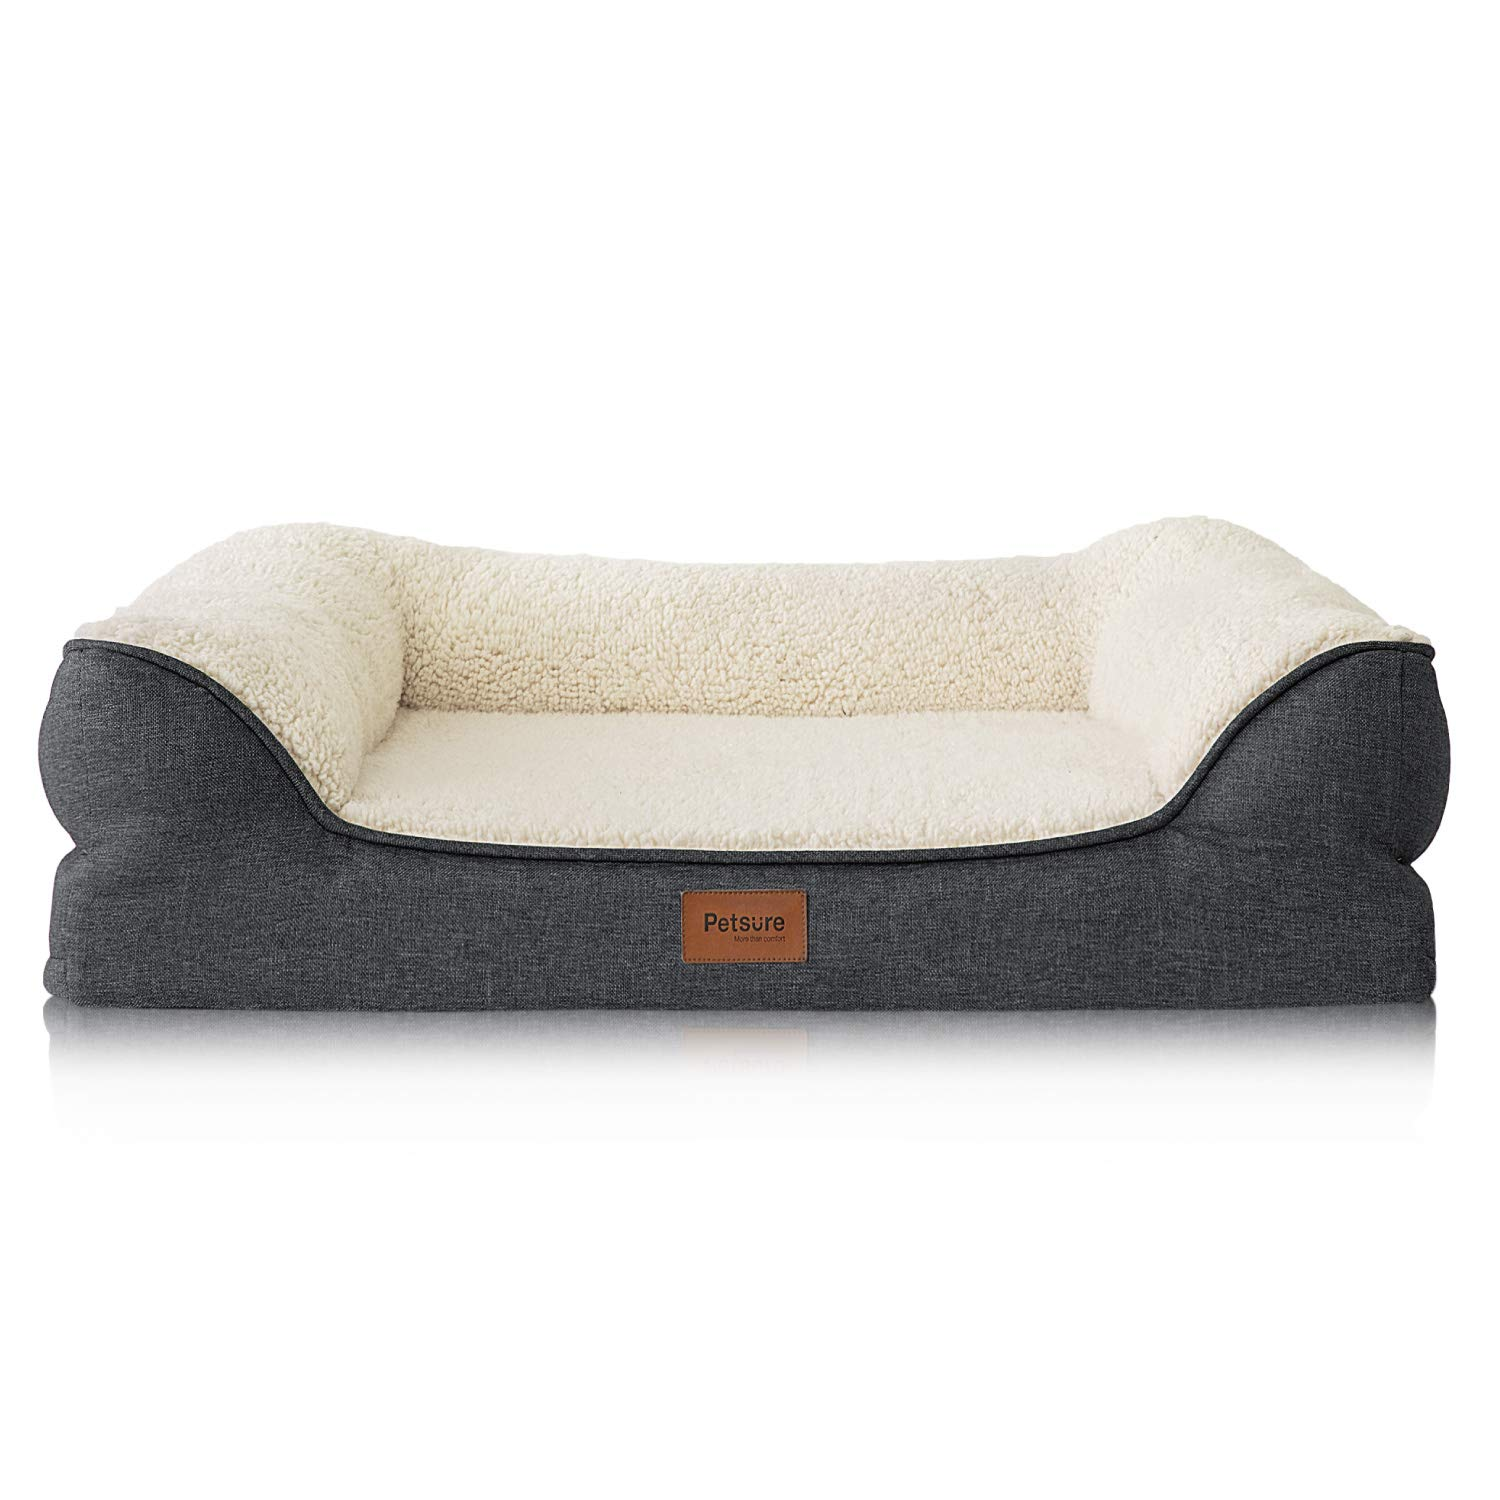 Petsure Orthopedic Pet Sofa Beds for Small, Medium, Large Dogs & Cats - 36''x27''x7'' Large Dog Beds, Grey - Memory Foam Couch Dog Bed with Removable Washable Cover - Bolster Dog Beds, Nonskid Bottom by Petsure